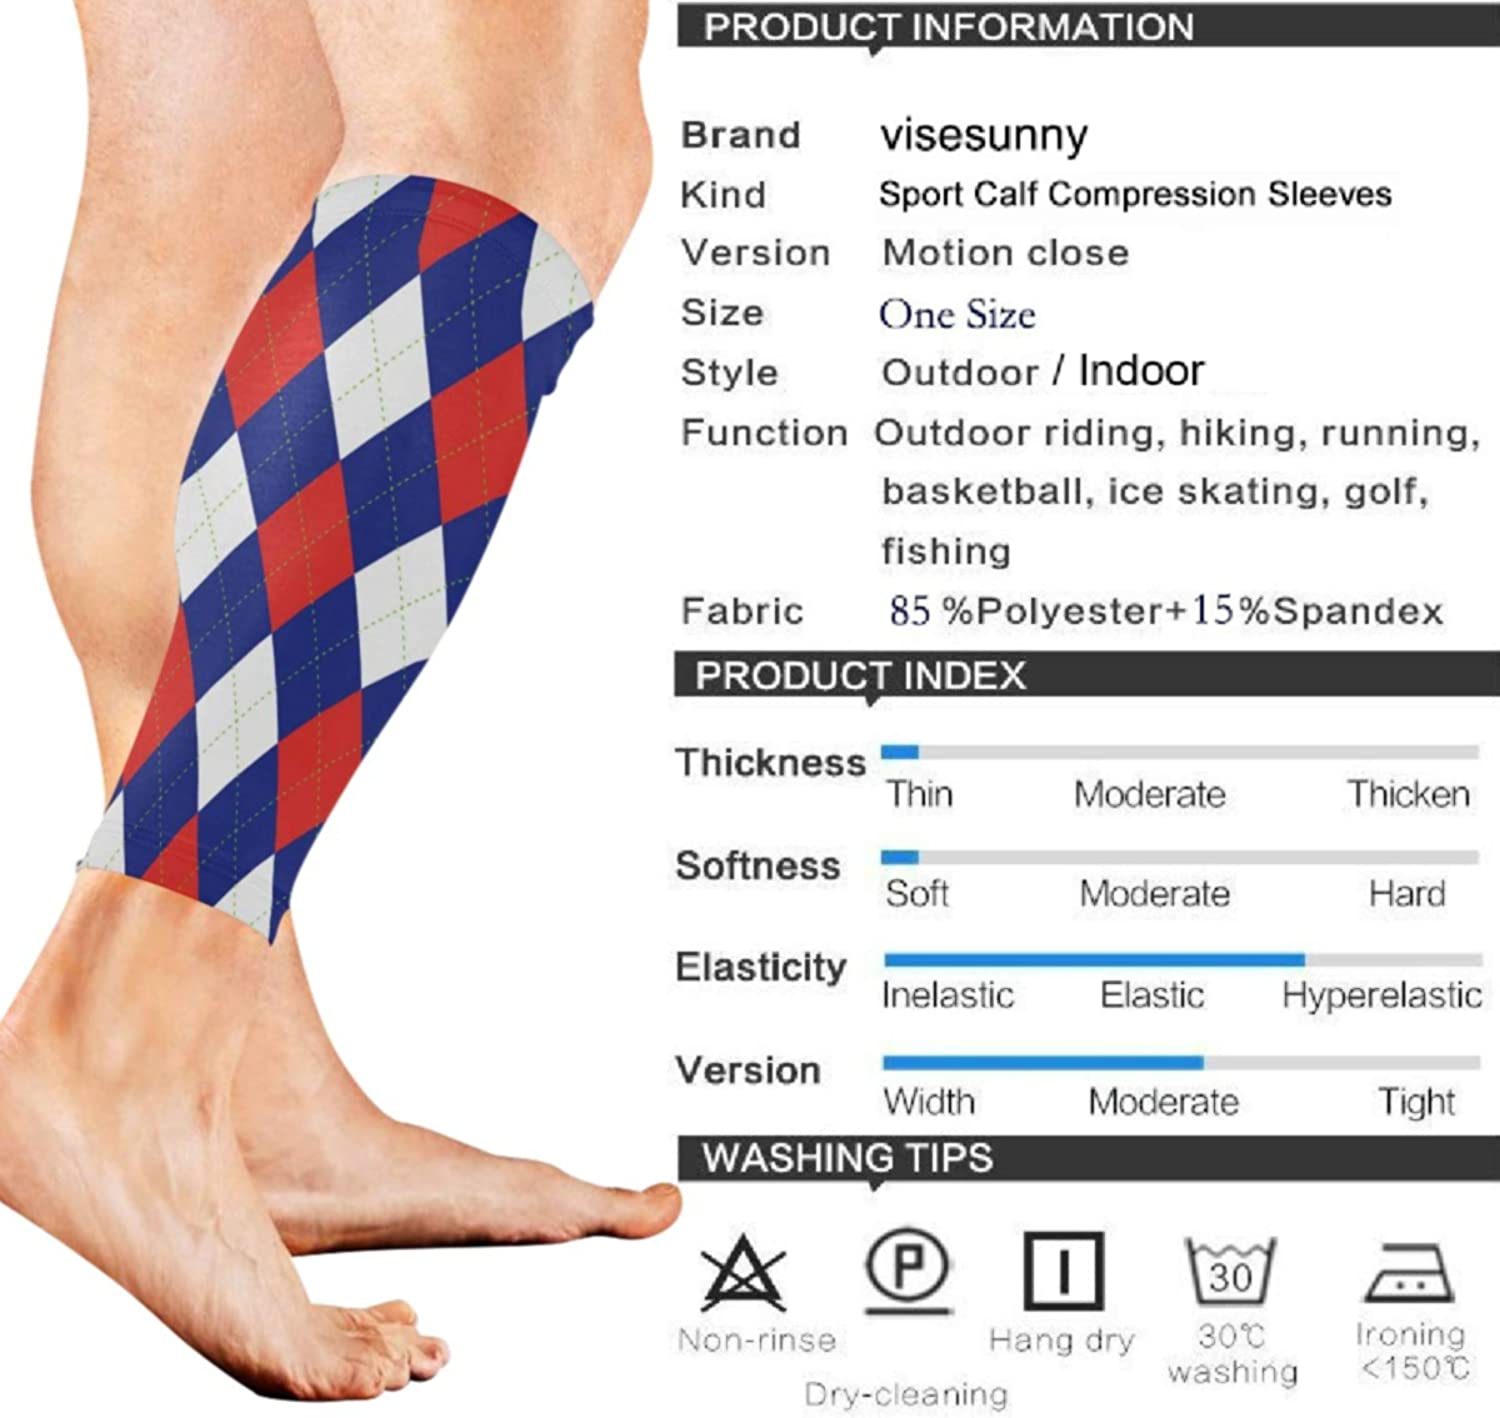 visesunny Argyle Plaid Pattern Sports Calf Support Sleeves for Muscle Pain Relief, Improved Circulation Compression – Effective Support for Running, Jogging,Workout(1 Pair)